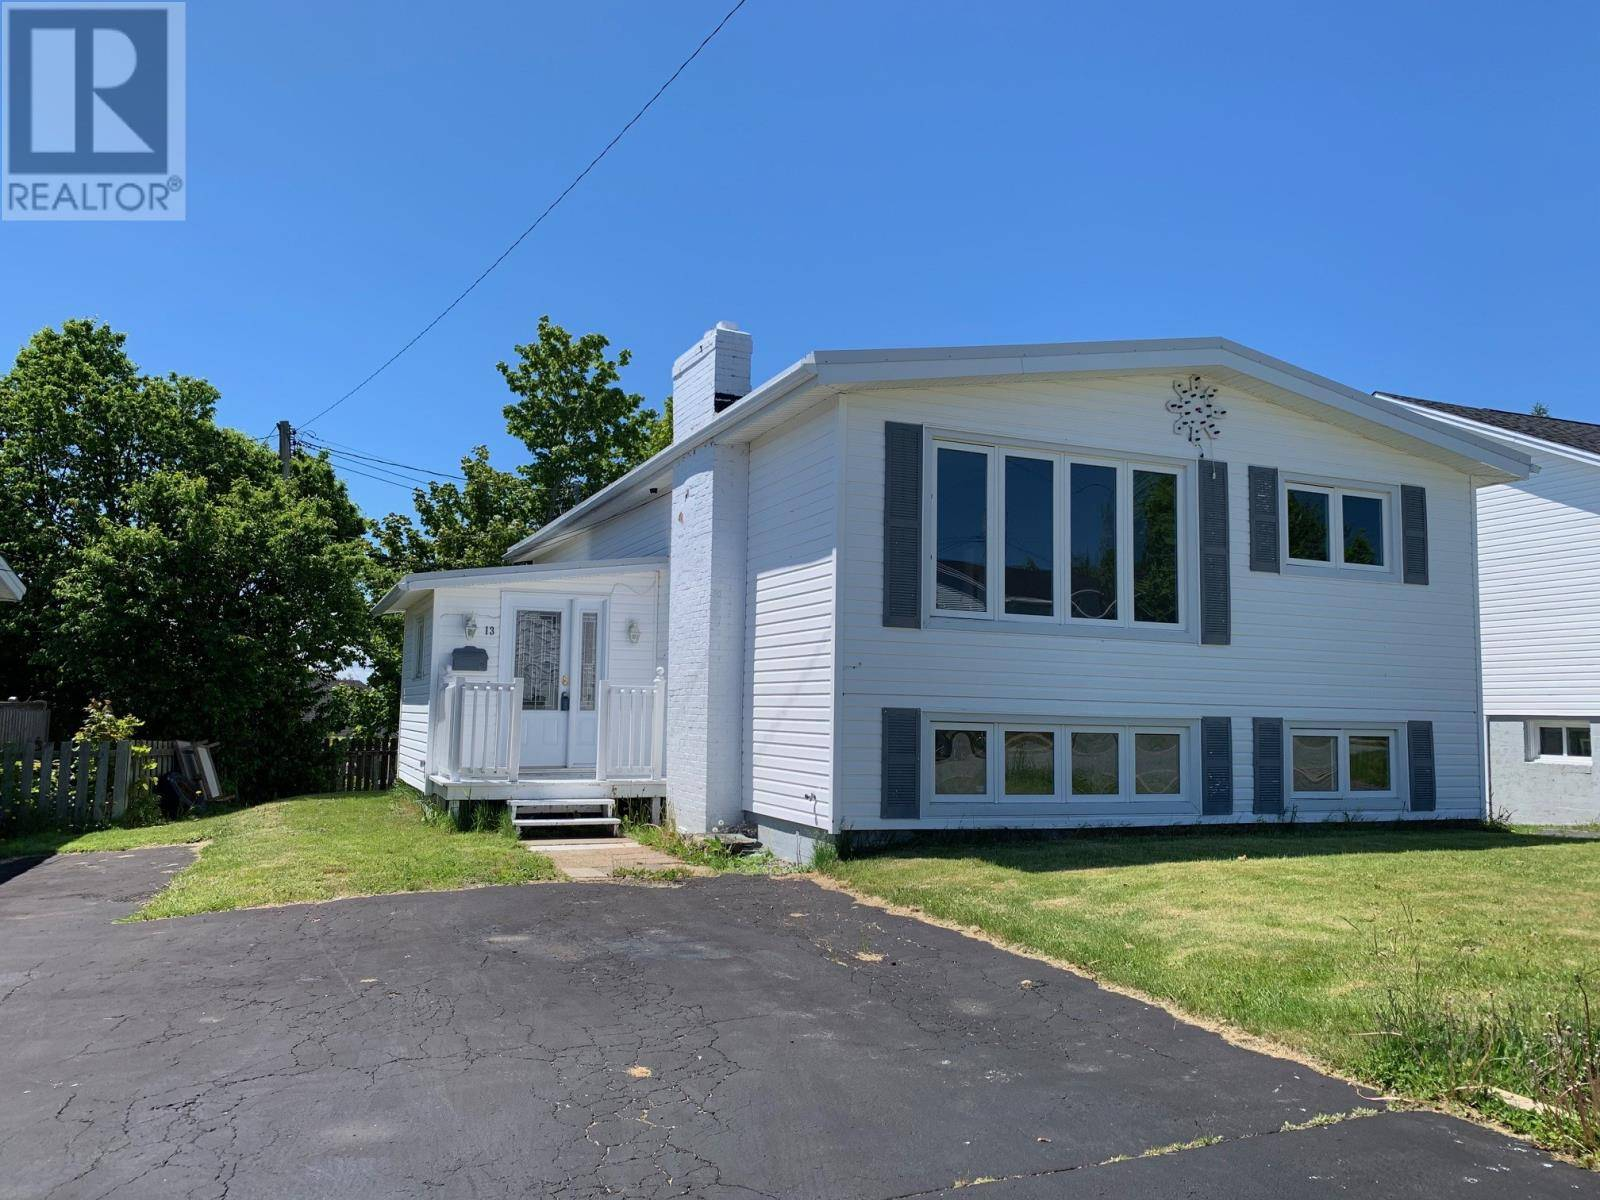 House for sale at 13 Channing Pl St. John's Newfoundland - MLS: 1207132